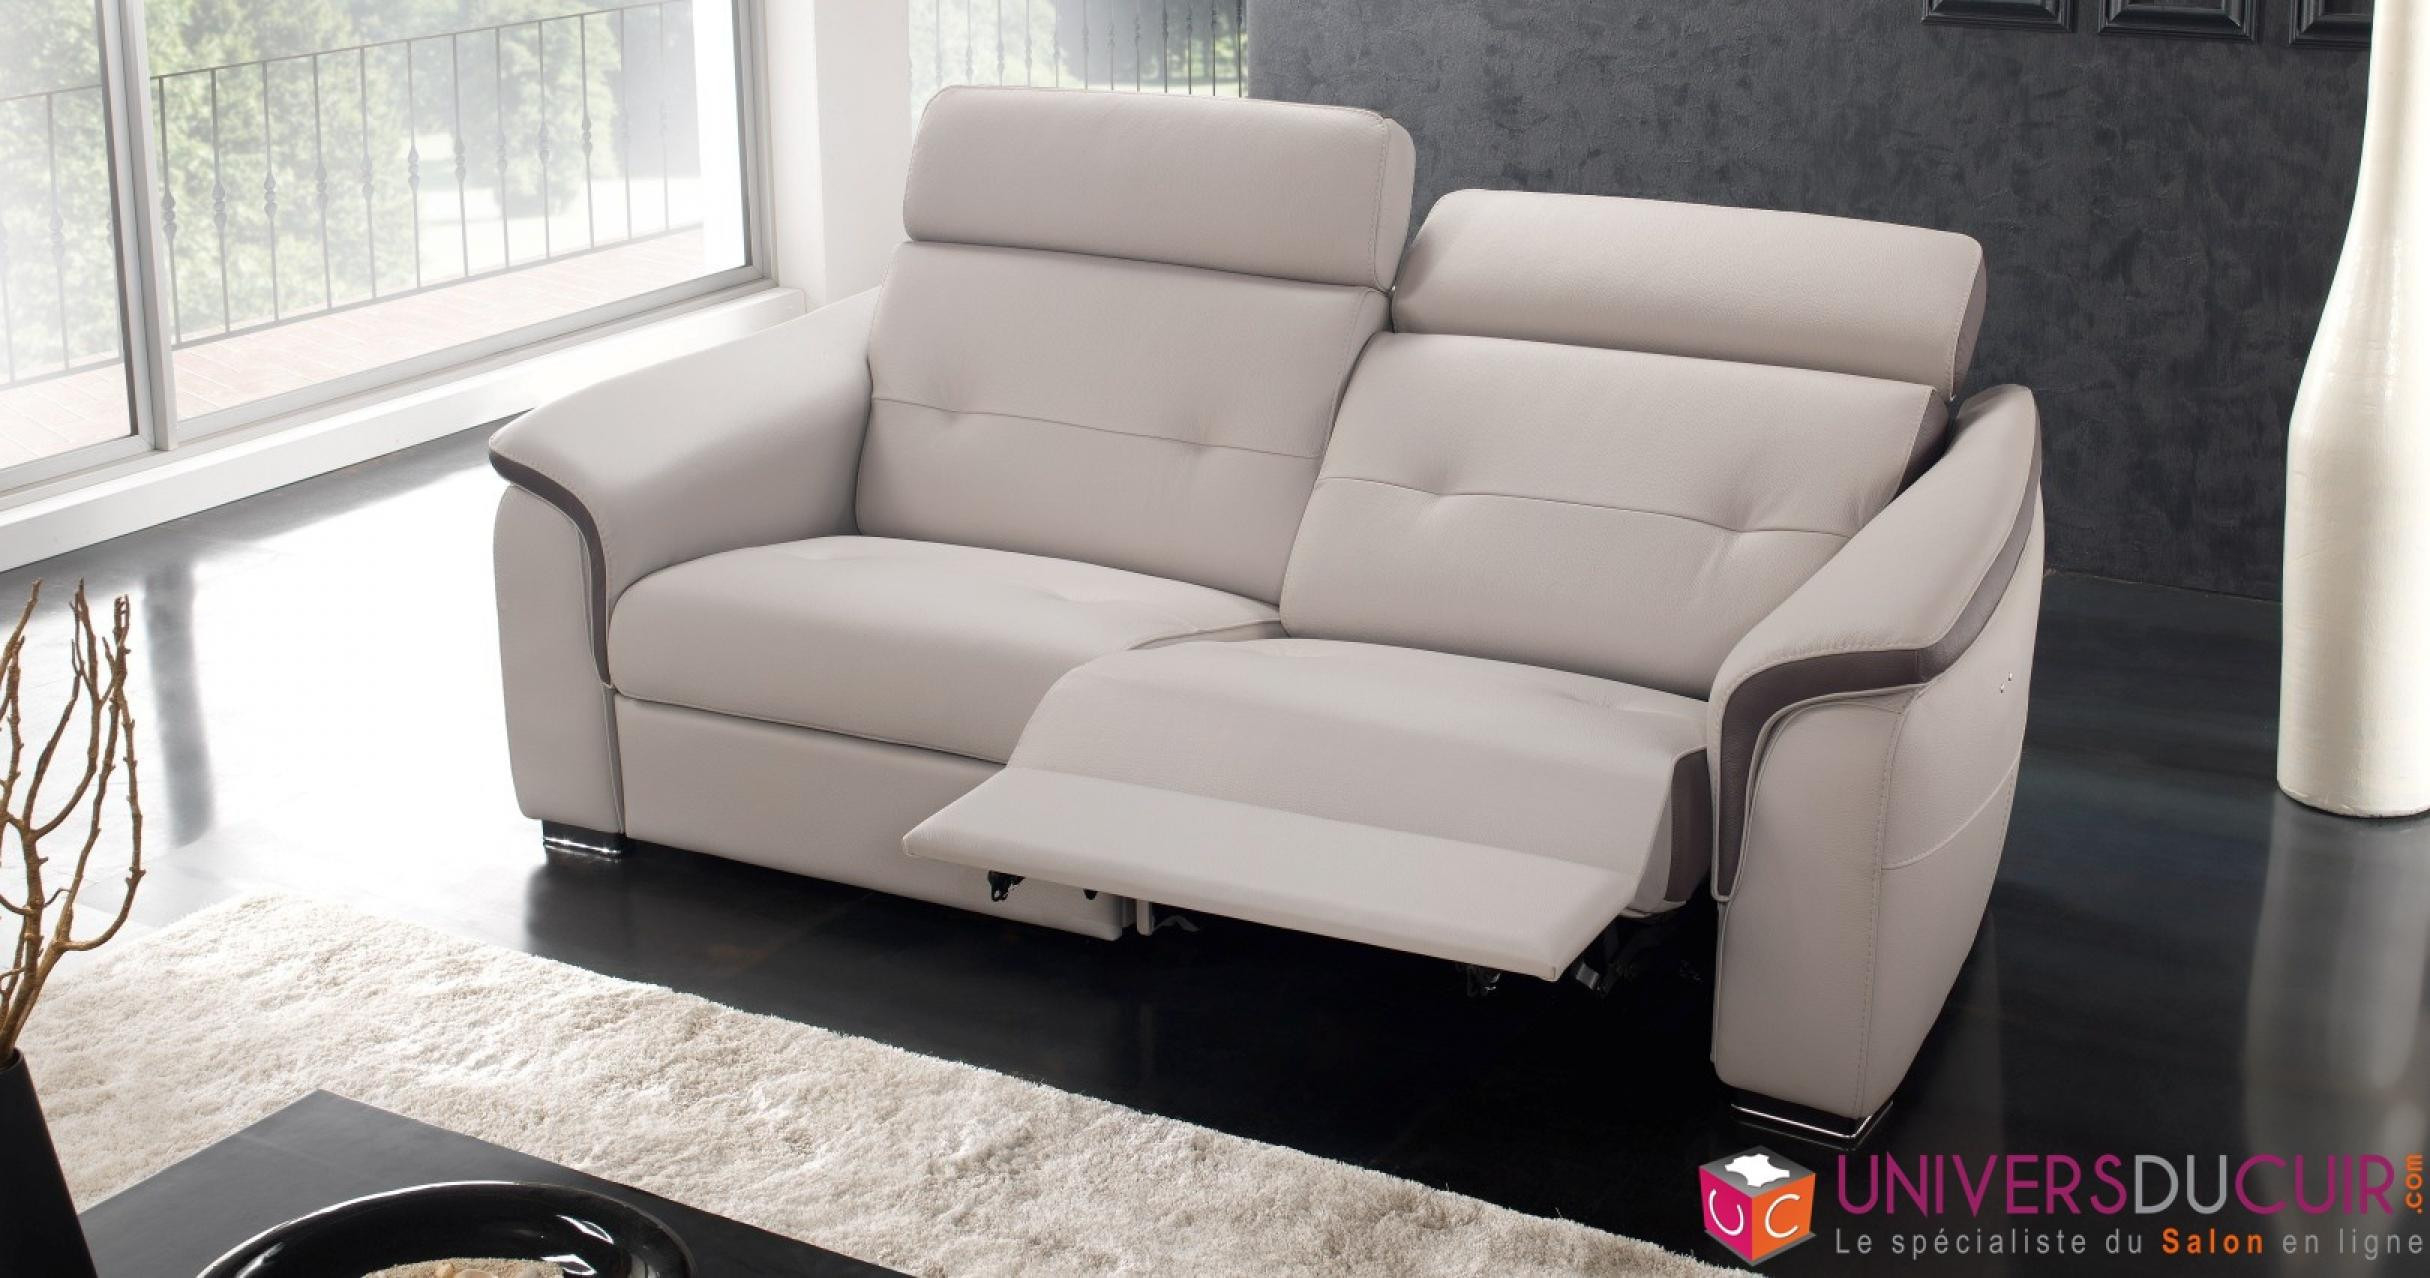 Canapé Relax Conforama Beau Photos Canap Et Fauteuil Relax Beautiful Canape Relax Electrique